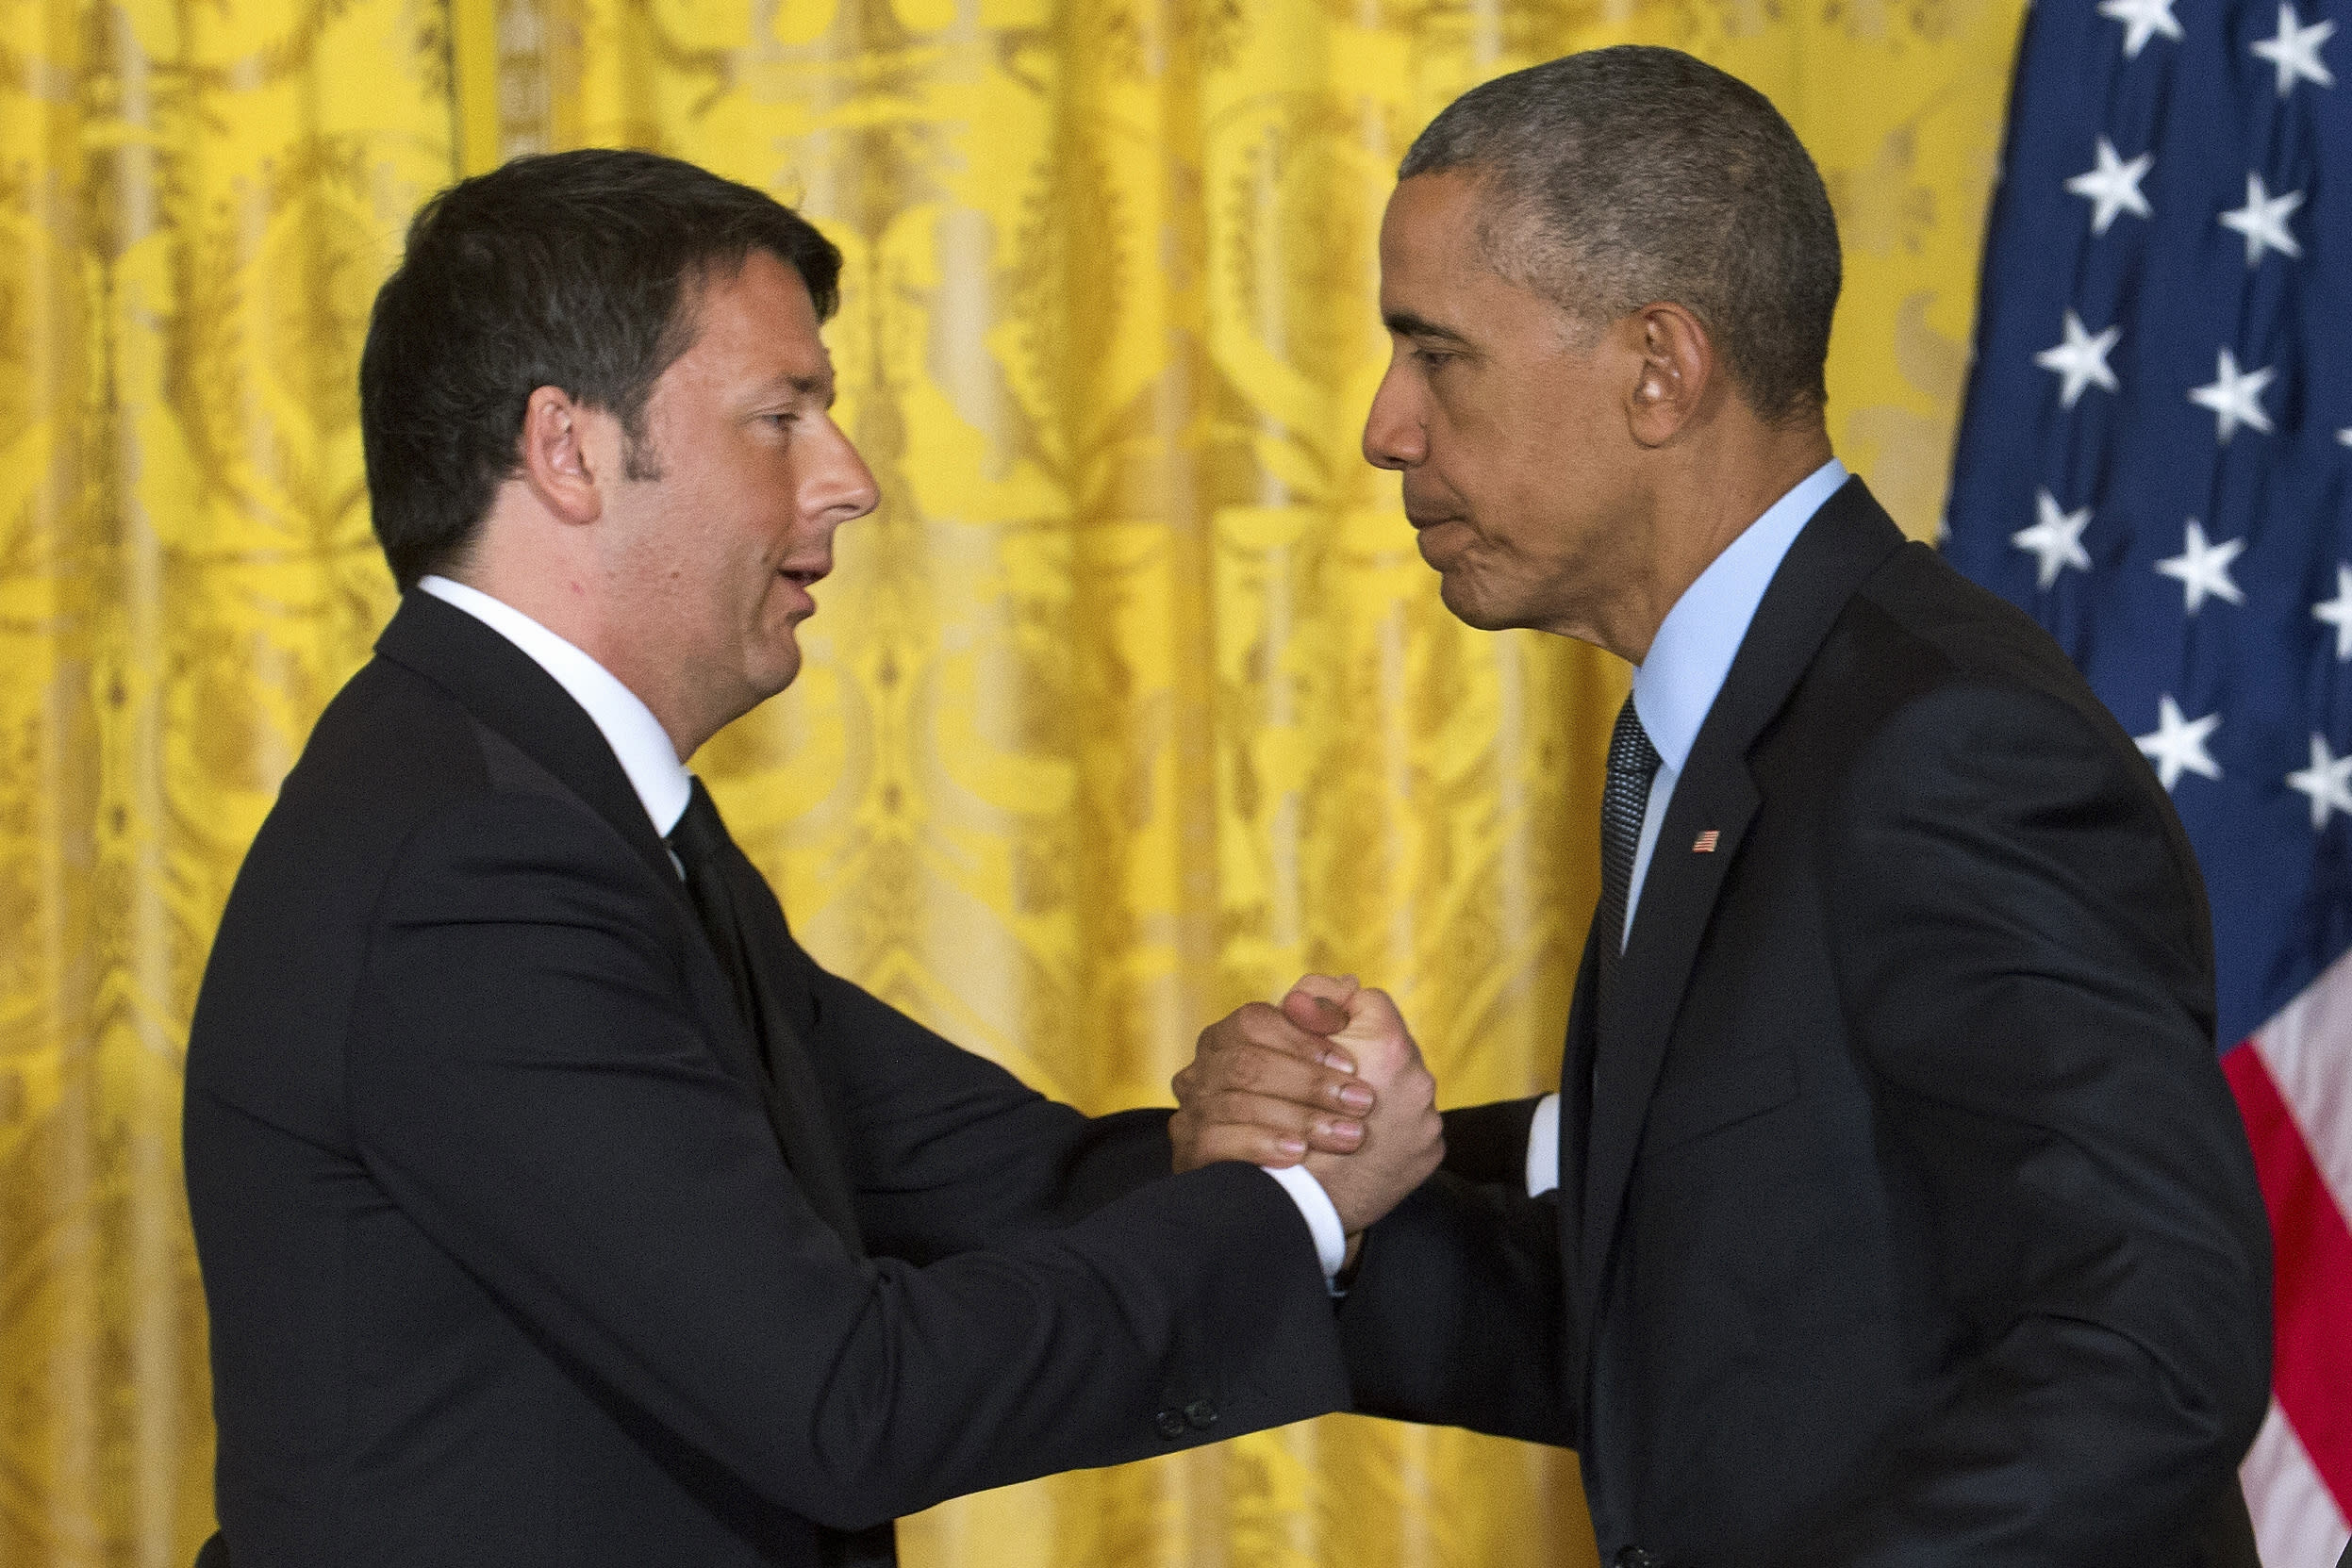 Obama, Italian Prime Minister Renzi to meet at White House